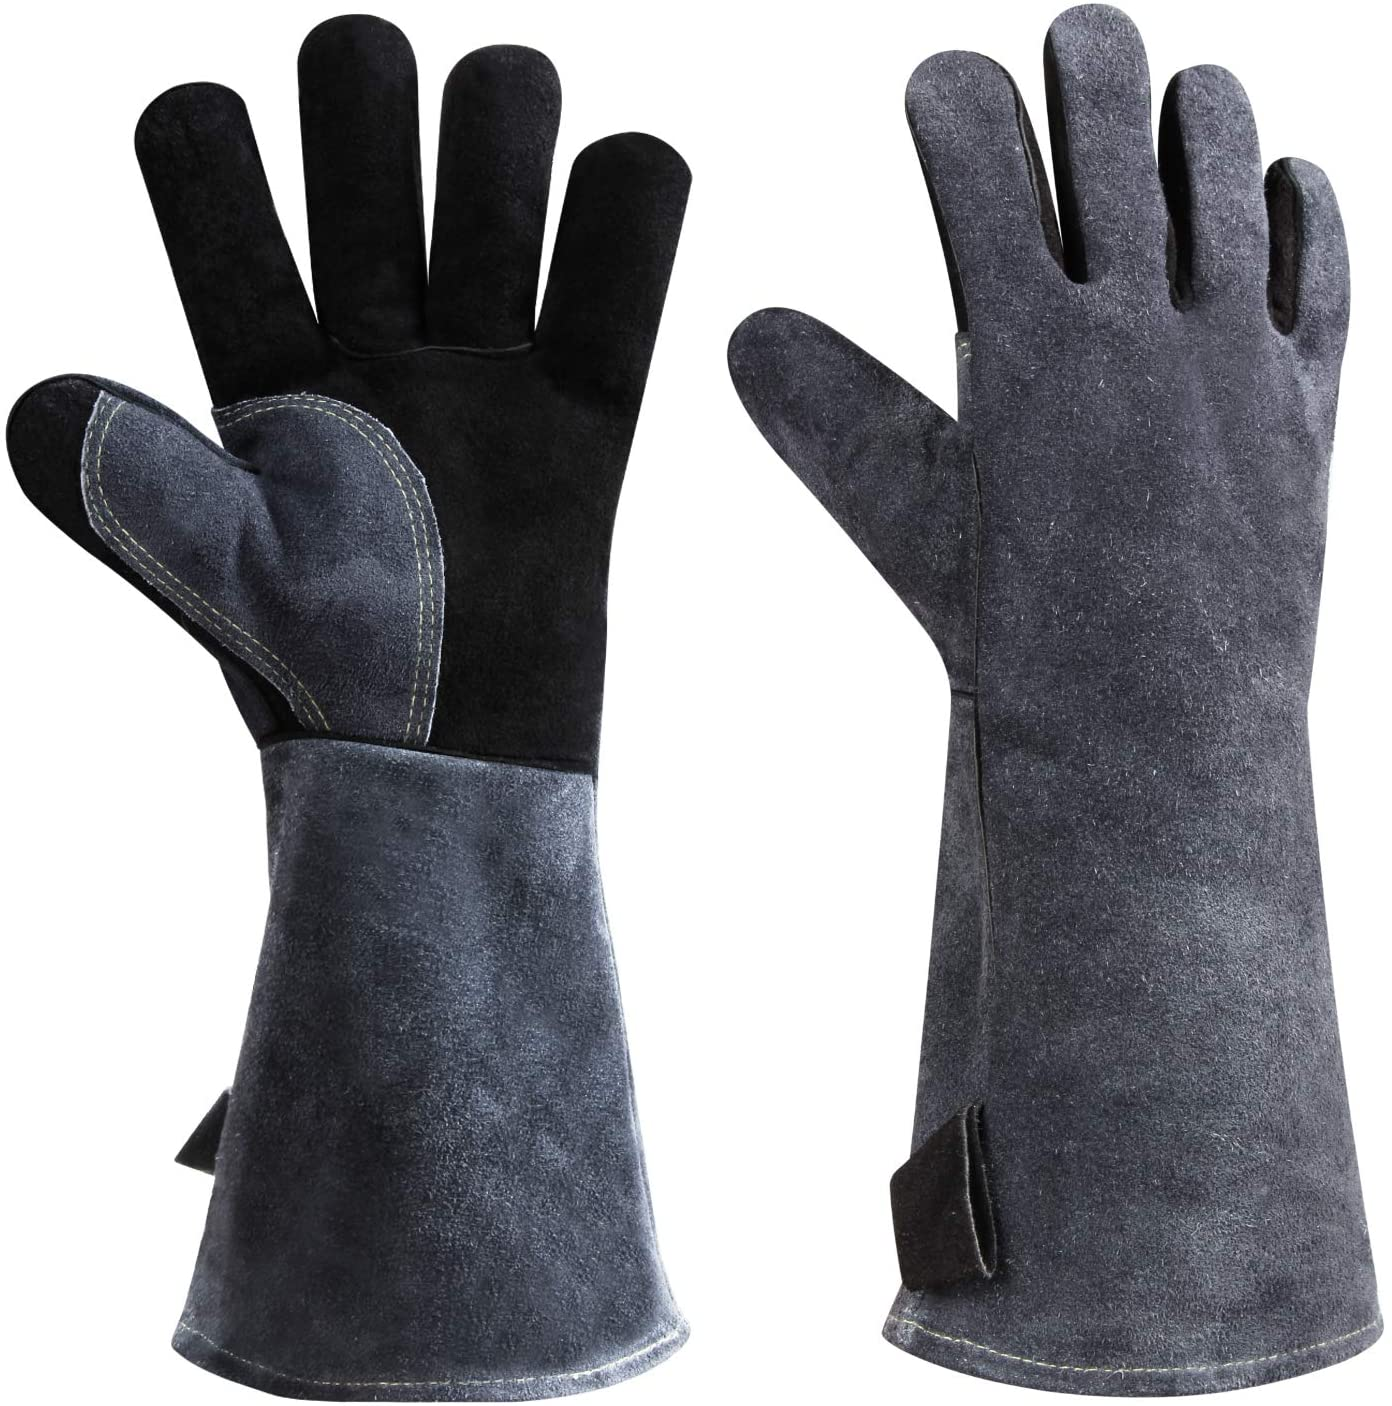 932 F Leather Heat Resistant Welding Gloves Grill Bbq Glove For Tig Welder Grilling Barbecue Oven Fireplace Wood Stove Long Sleeve And Insulated Cotton Black Gray 16 Inch Amazon Com